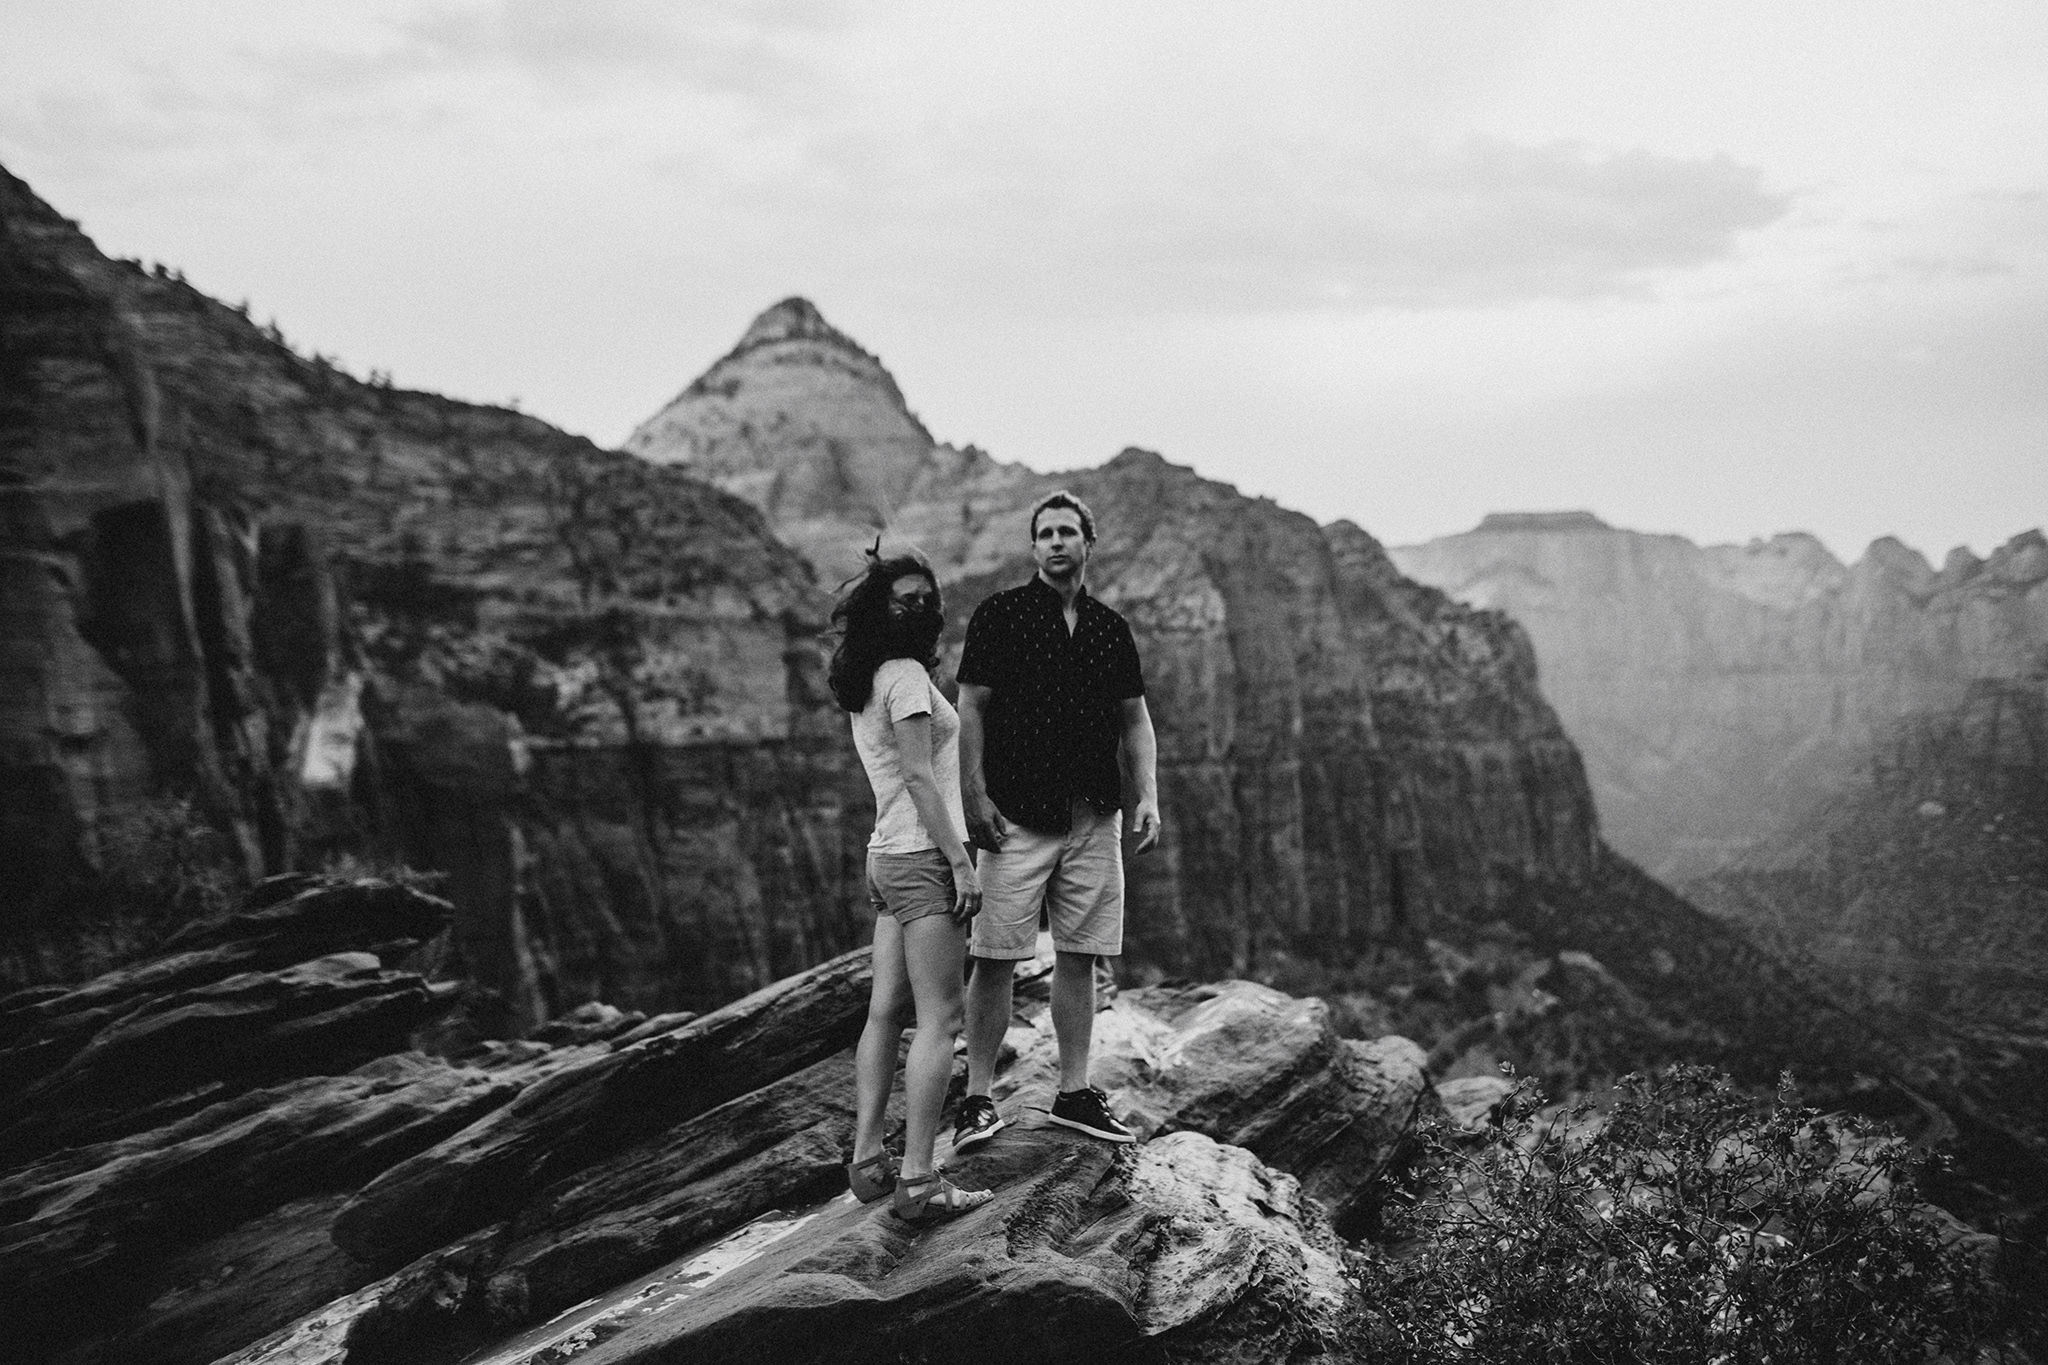 Wedding anniversary photos, Zion National Park, Utah